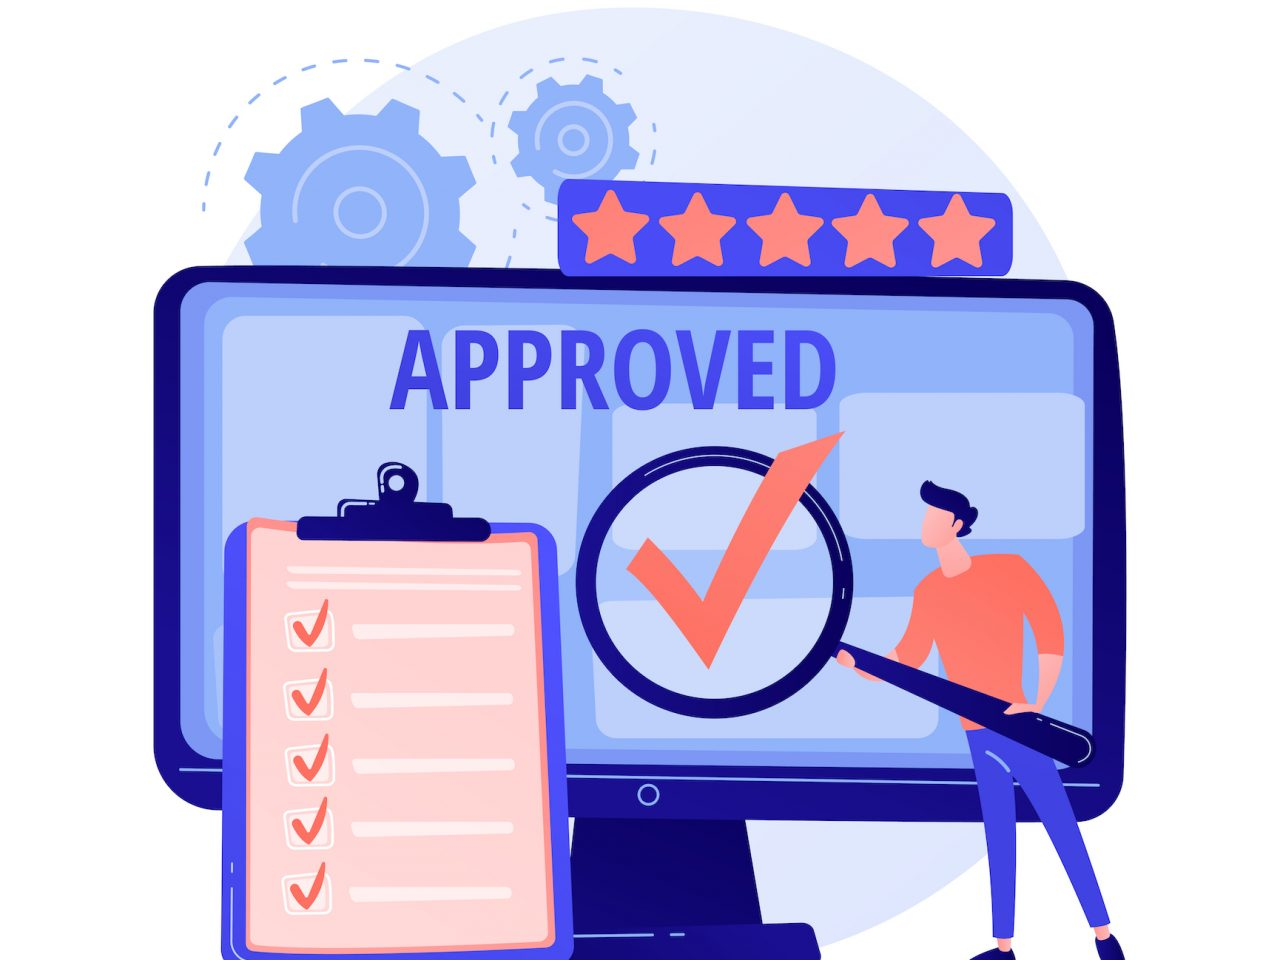 Expert approved. Cartoon character holding checkmark symbol on hand. Finished task, done sign. Satisfactory, official sanction, acceptance. Vector isolated concept metaphor illustration